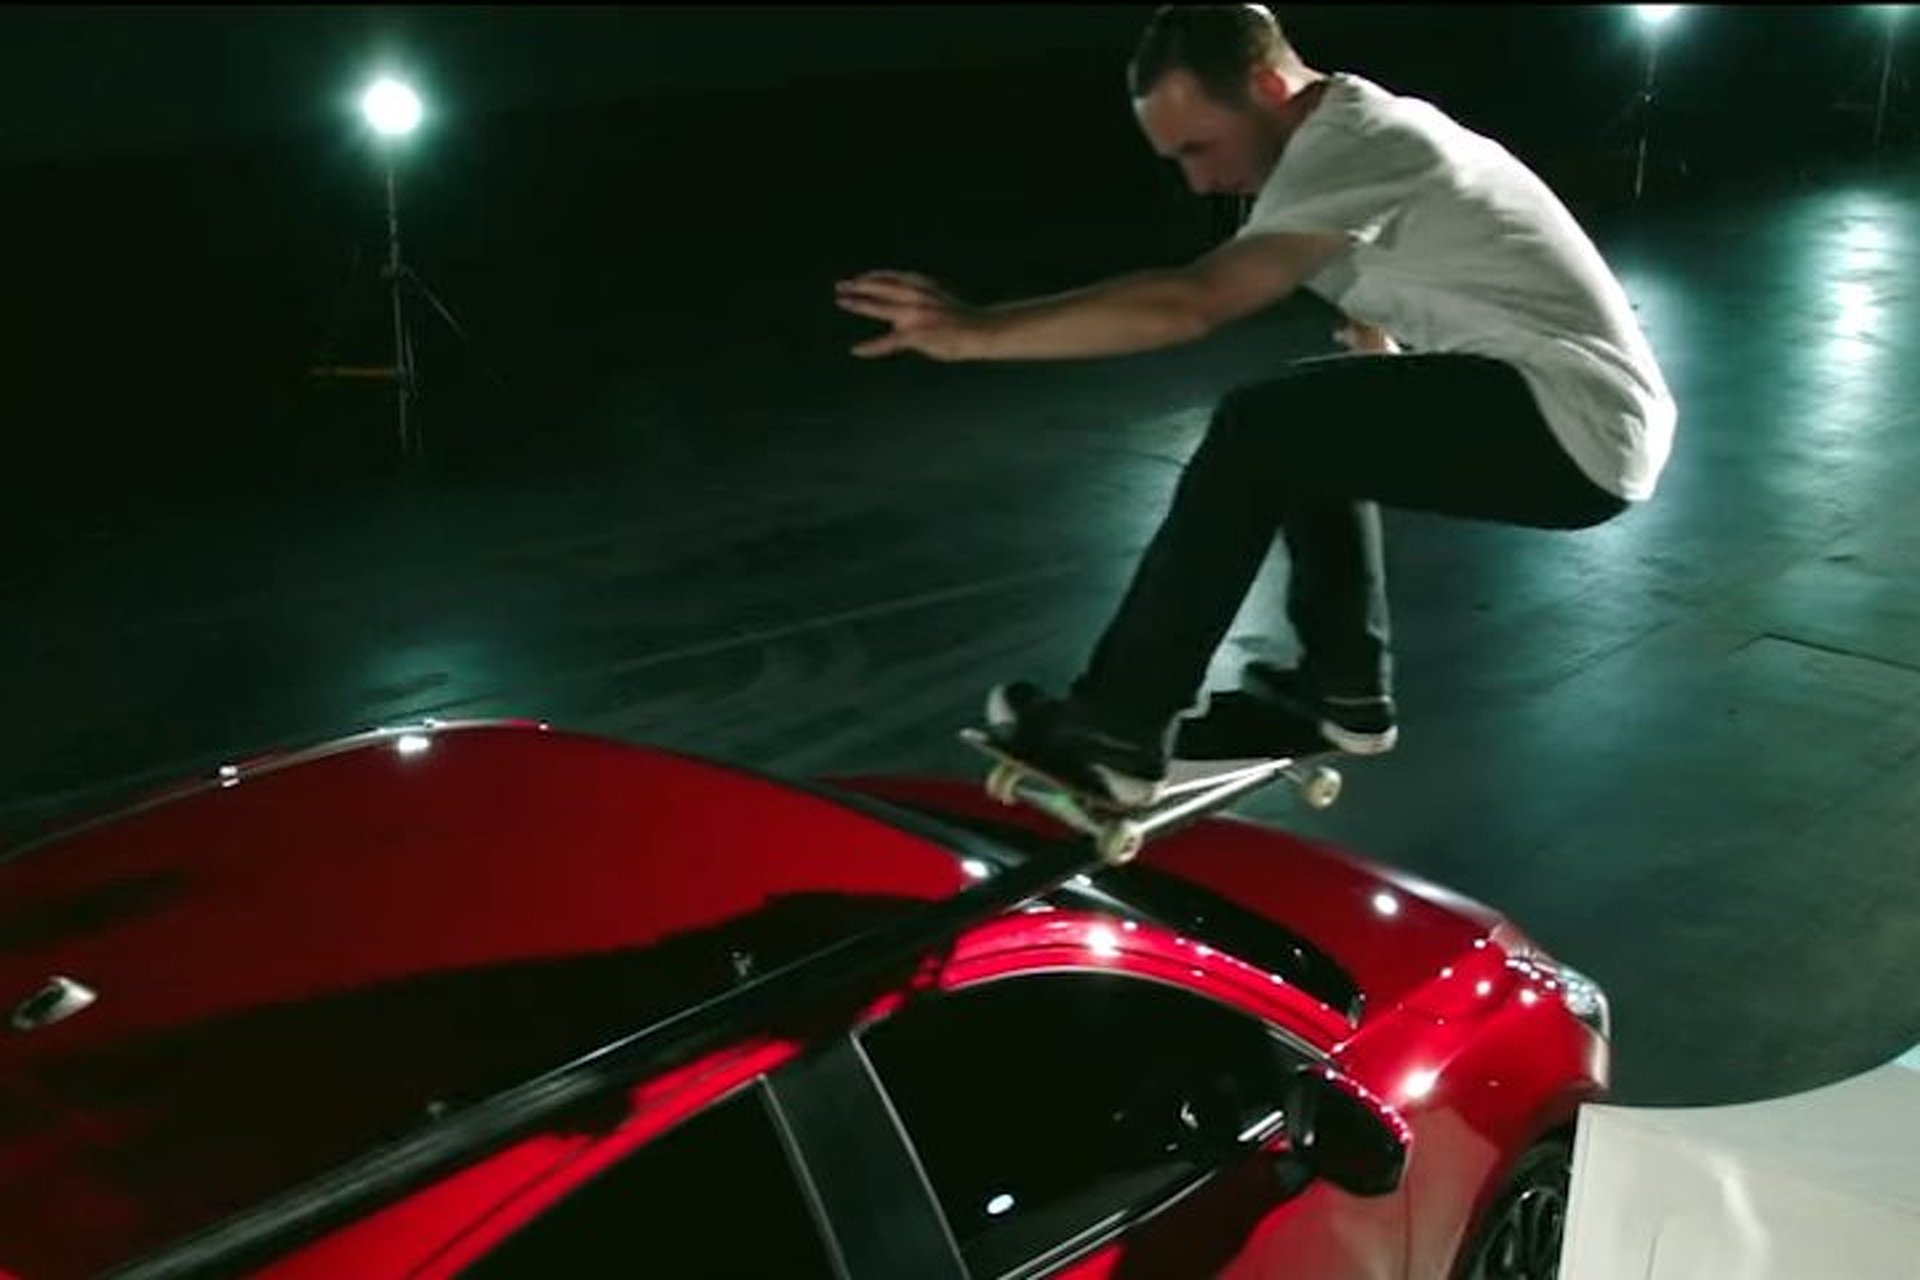 Watch a Pro Skater Grind Atop a Moving Mazda2